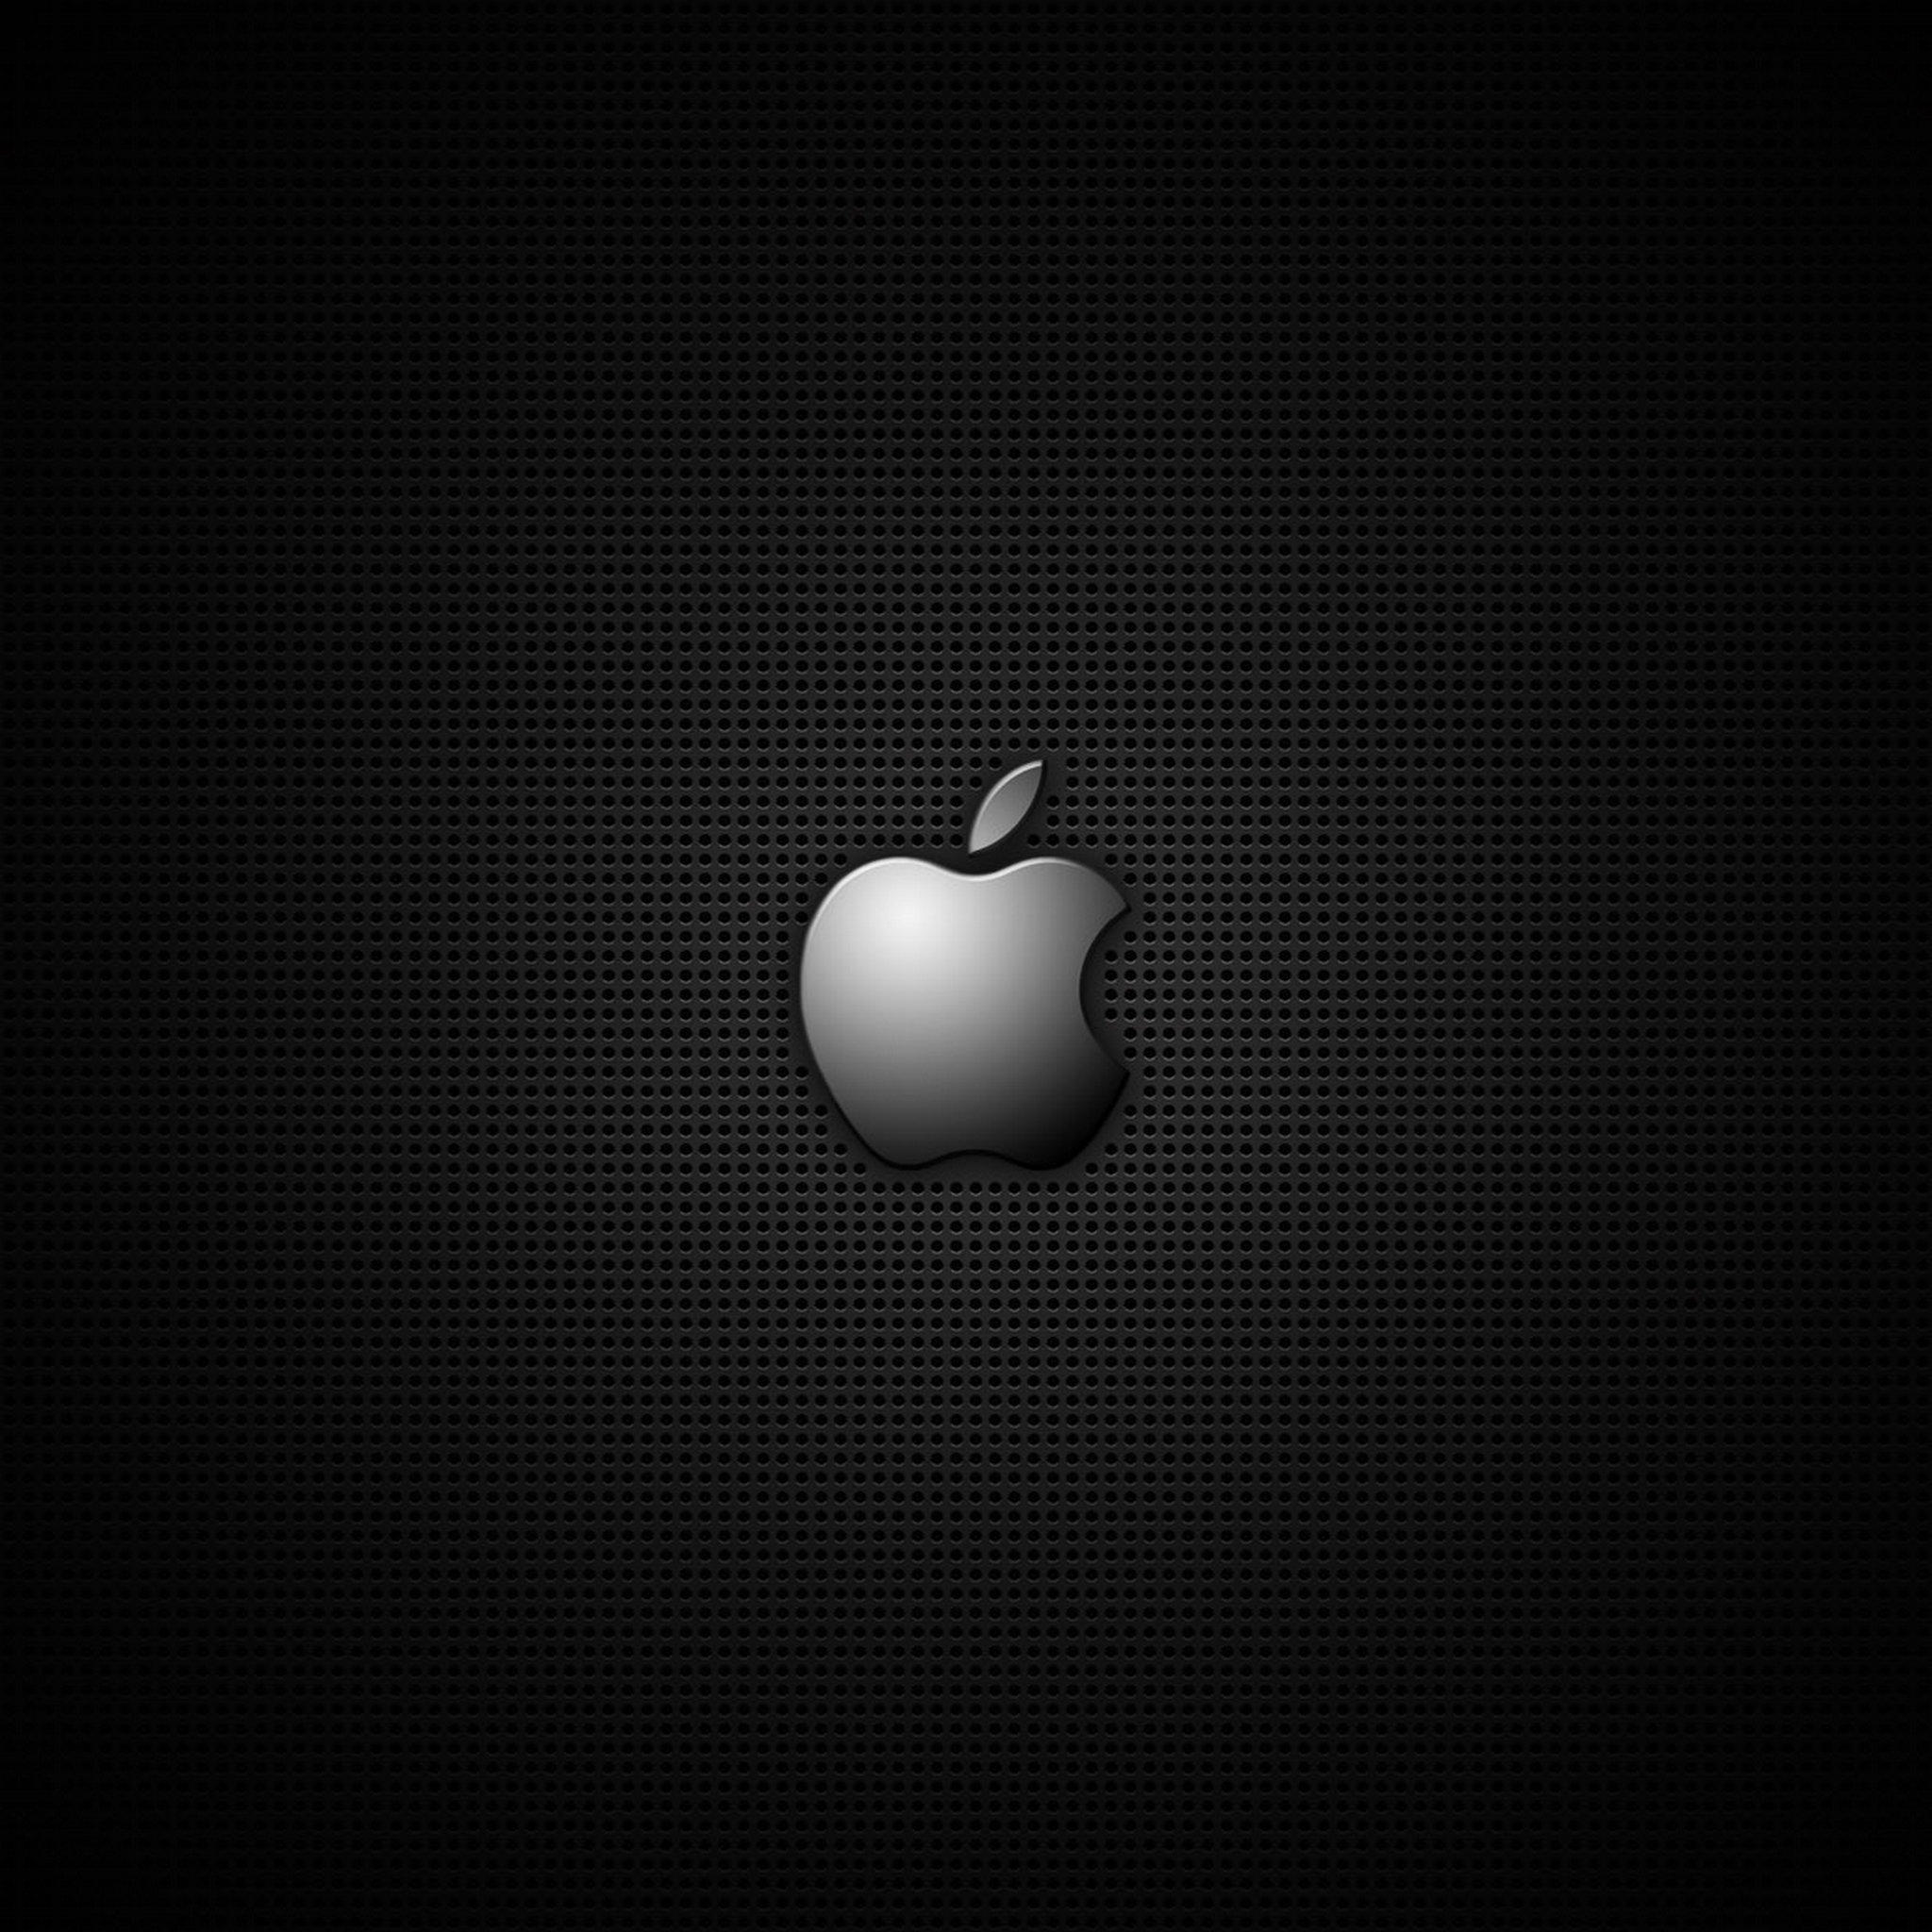 iPad Wallpapers Apple LOGO 041   Apple New iPad iPad 3 iPad 4 2048x2048